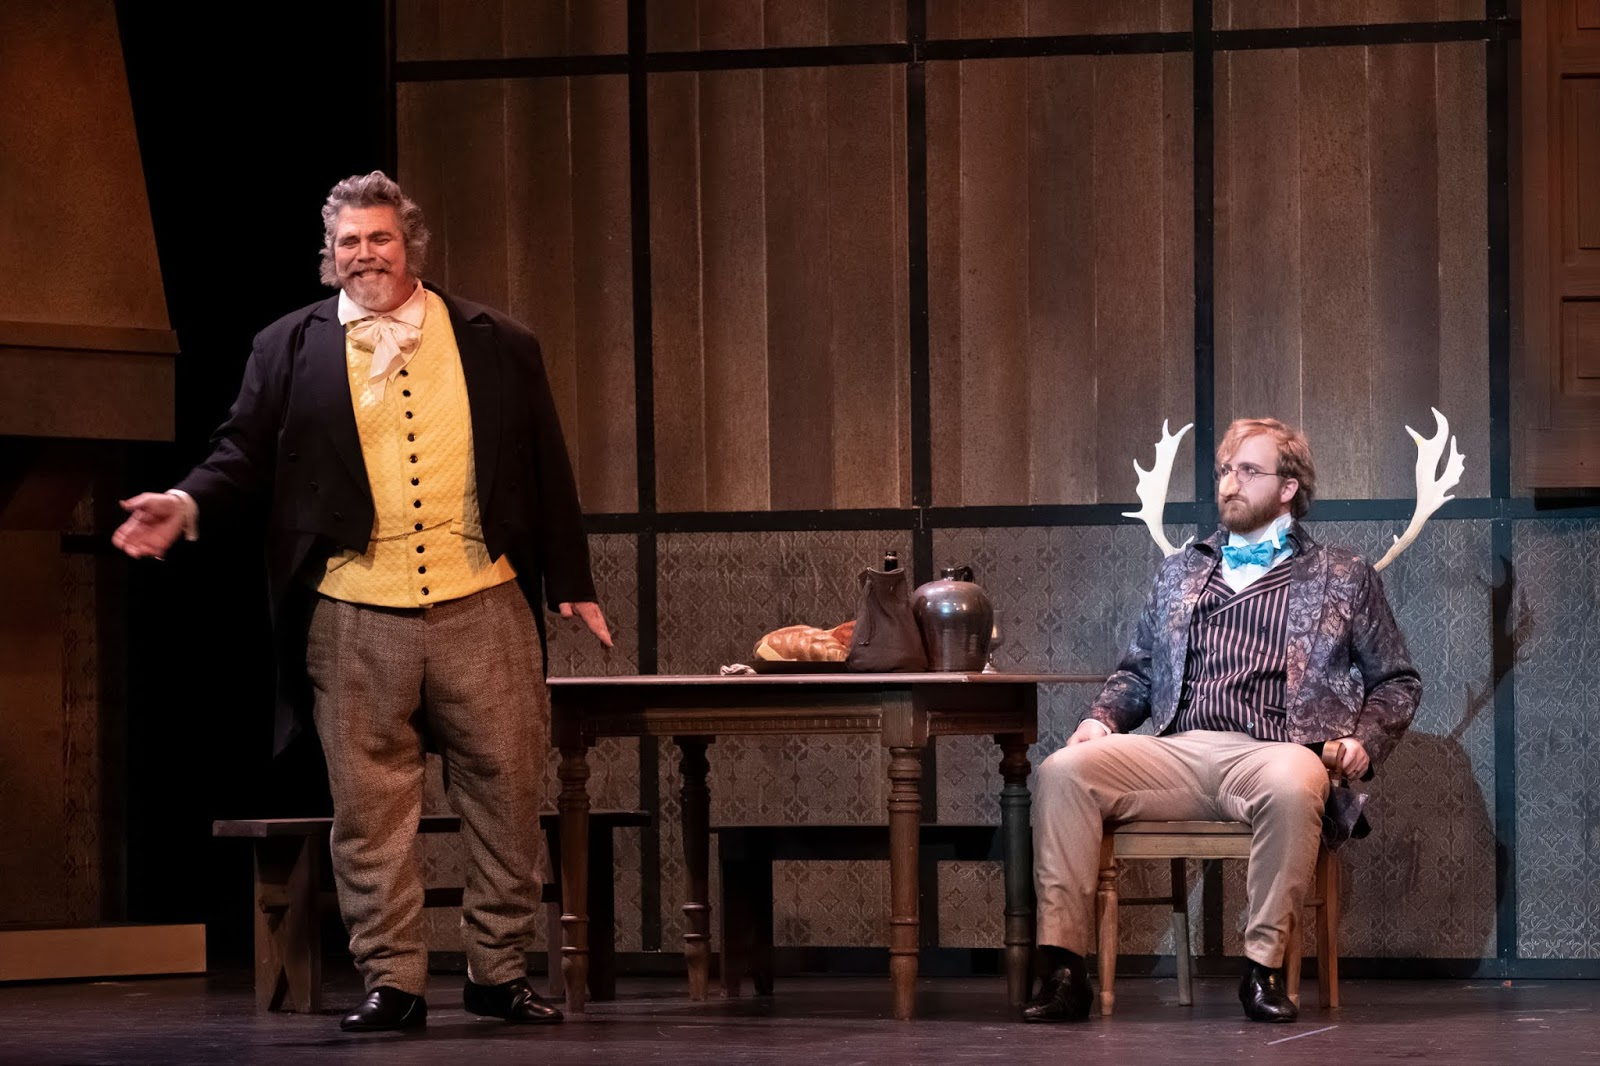 IN REVIEW: baritones RICHARD ZELLER as Falstaff (left) and CHRISTIAN BLACKBURN as Ford (right) in UNCG Opera Theatre's April 2019 production of Giuseppe Verdi's FALSTAFF [Photograph by Martin Kane, © by UNCG Opera Theatre]